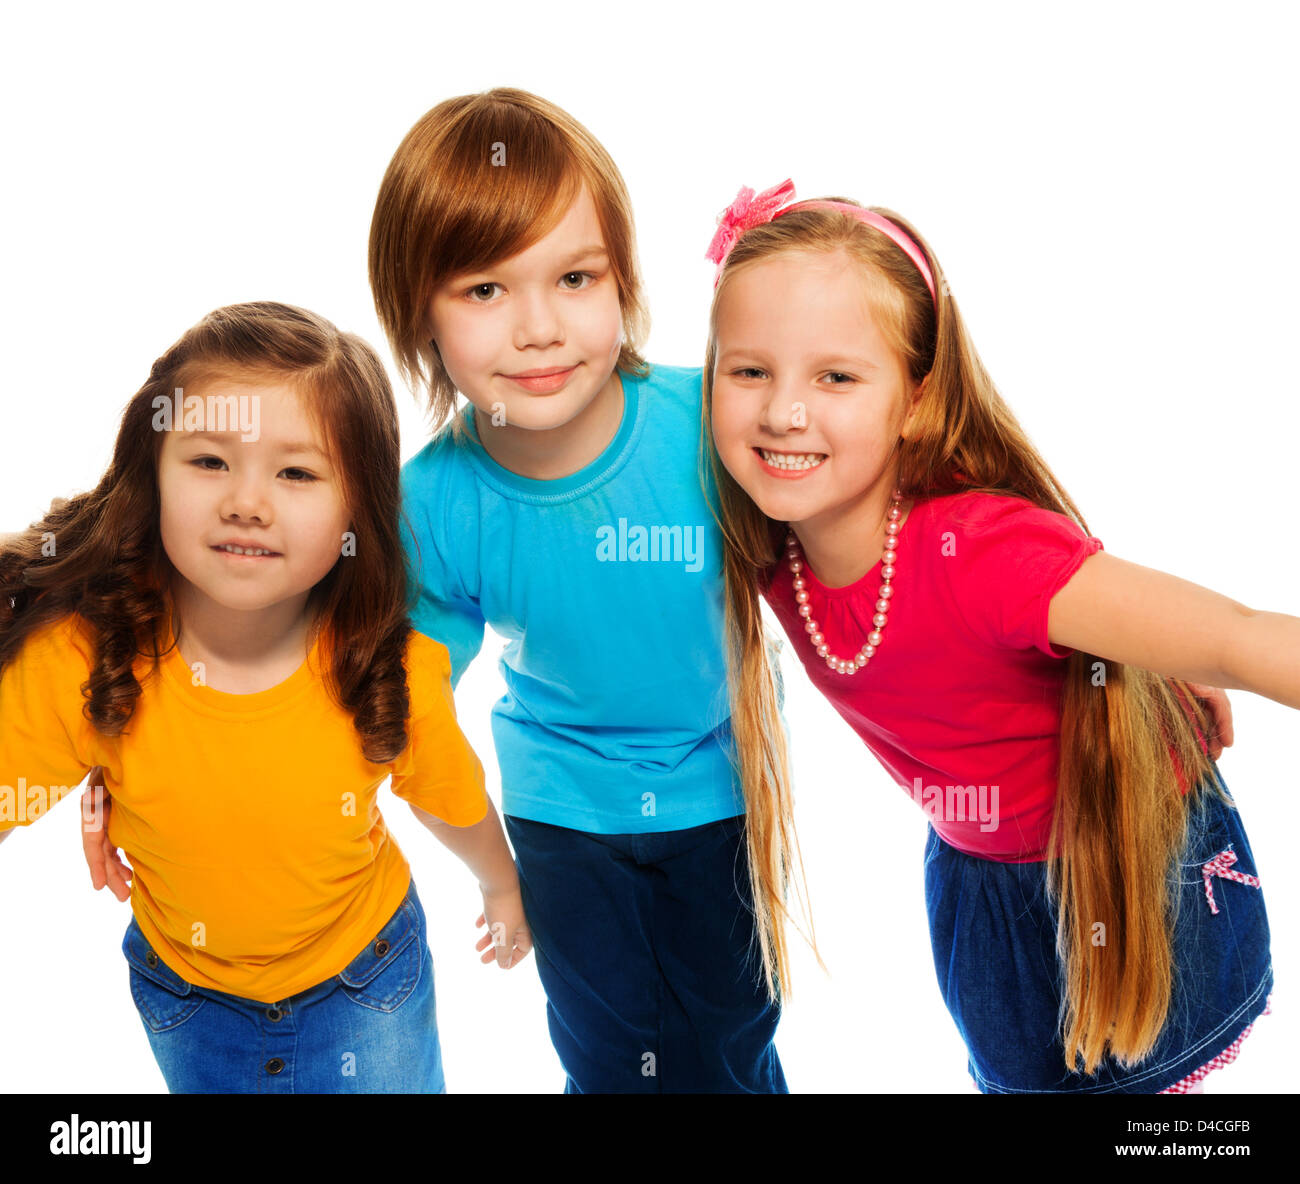 Group Of Three Kids Two Girls And Boy Together Asian And